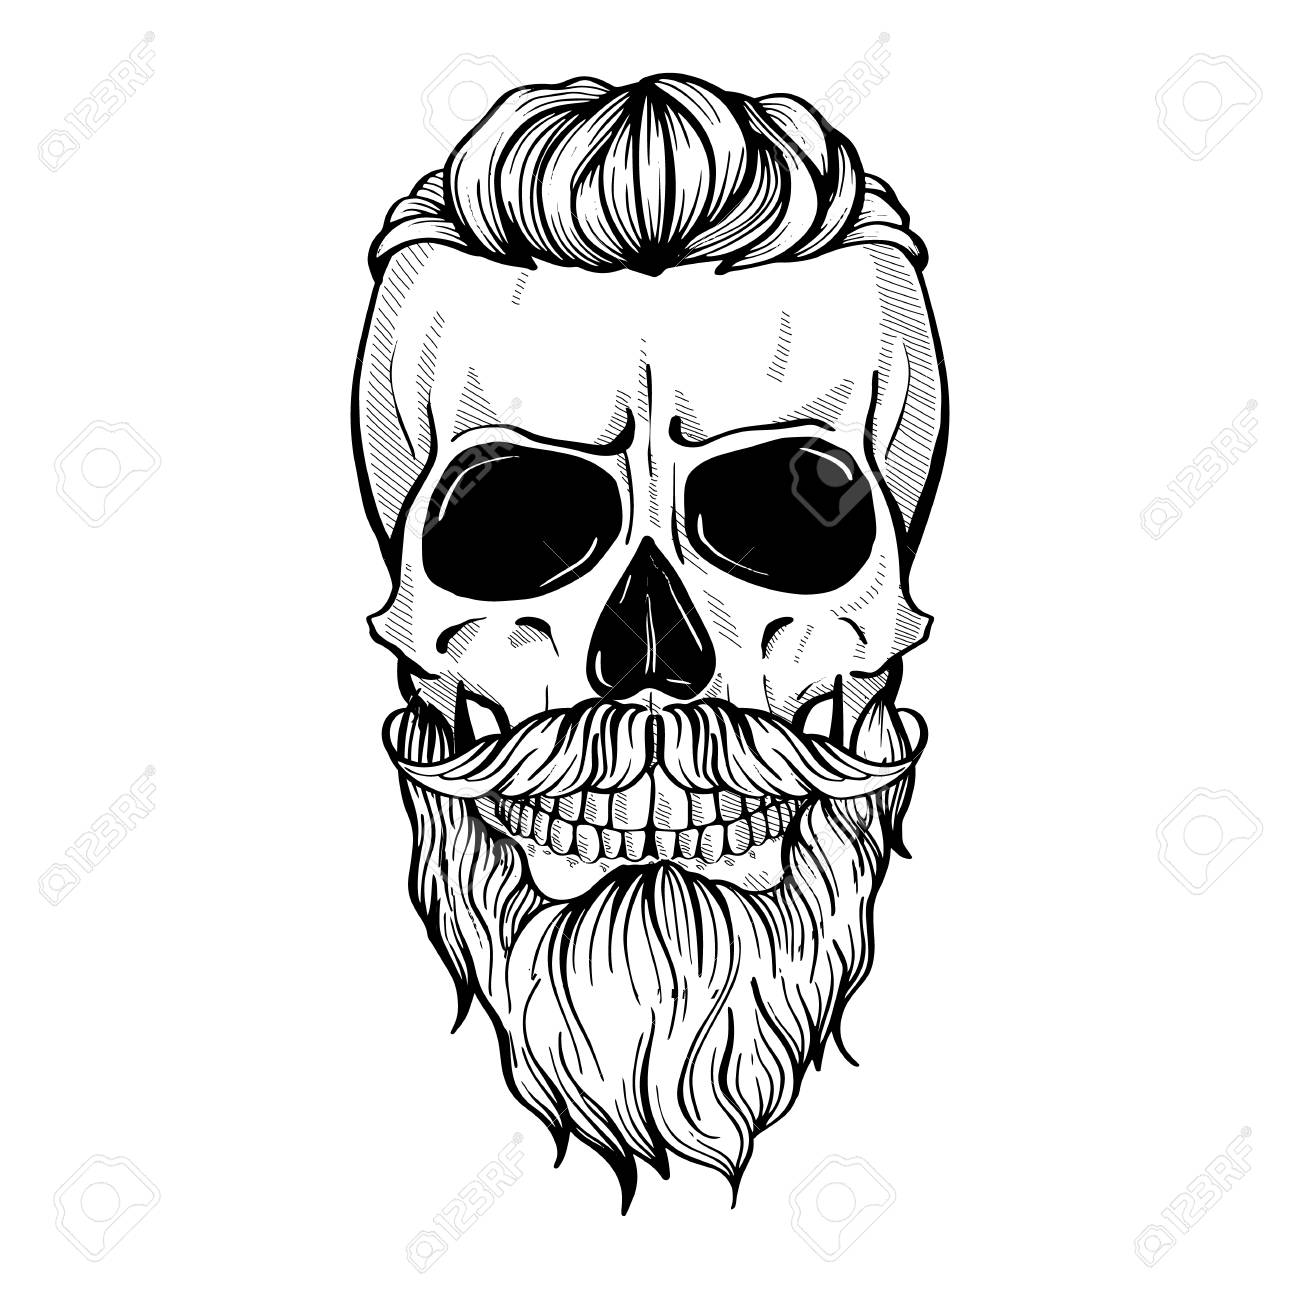 Skull with hairstyle tail, moustaches and beard, line art.